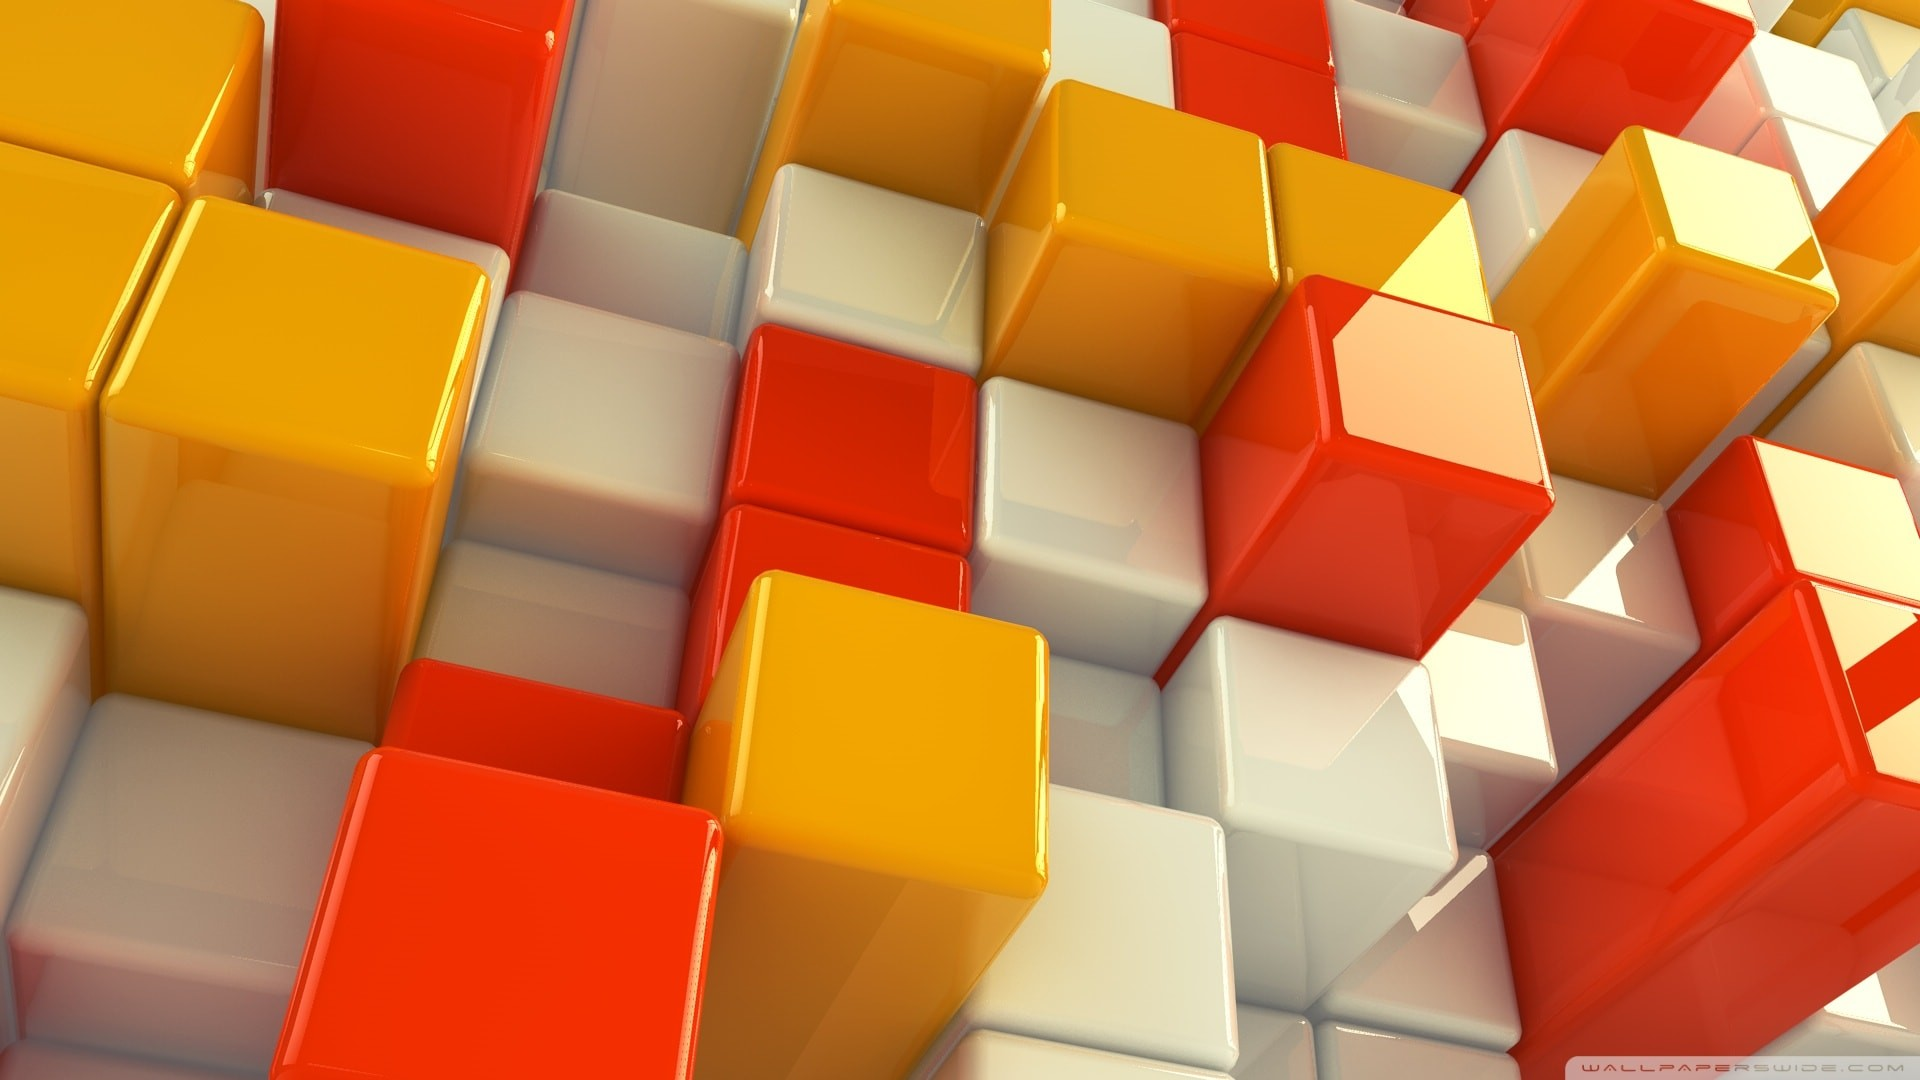 3d abstract yellow orange white cubes